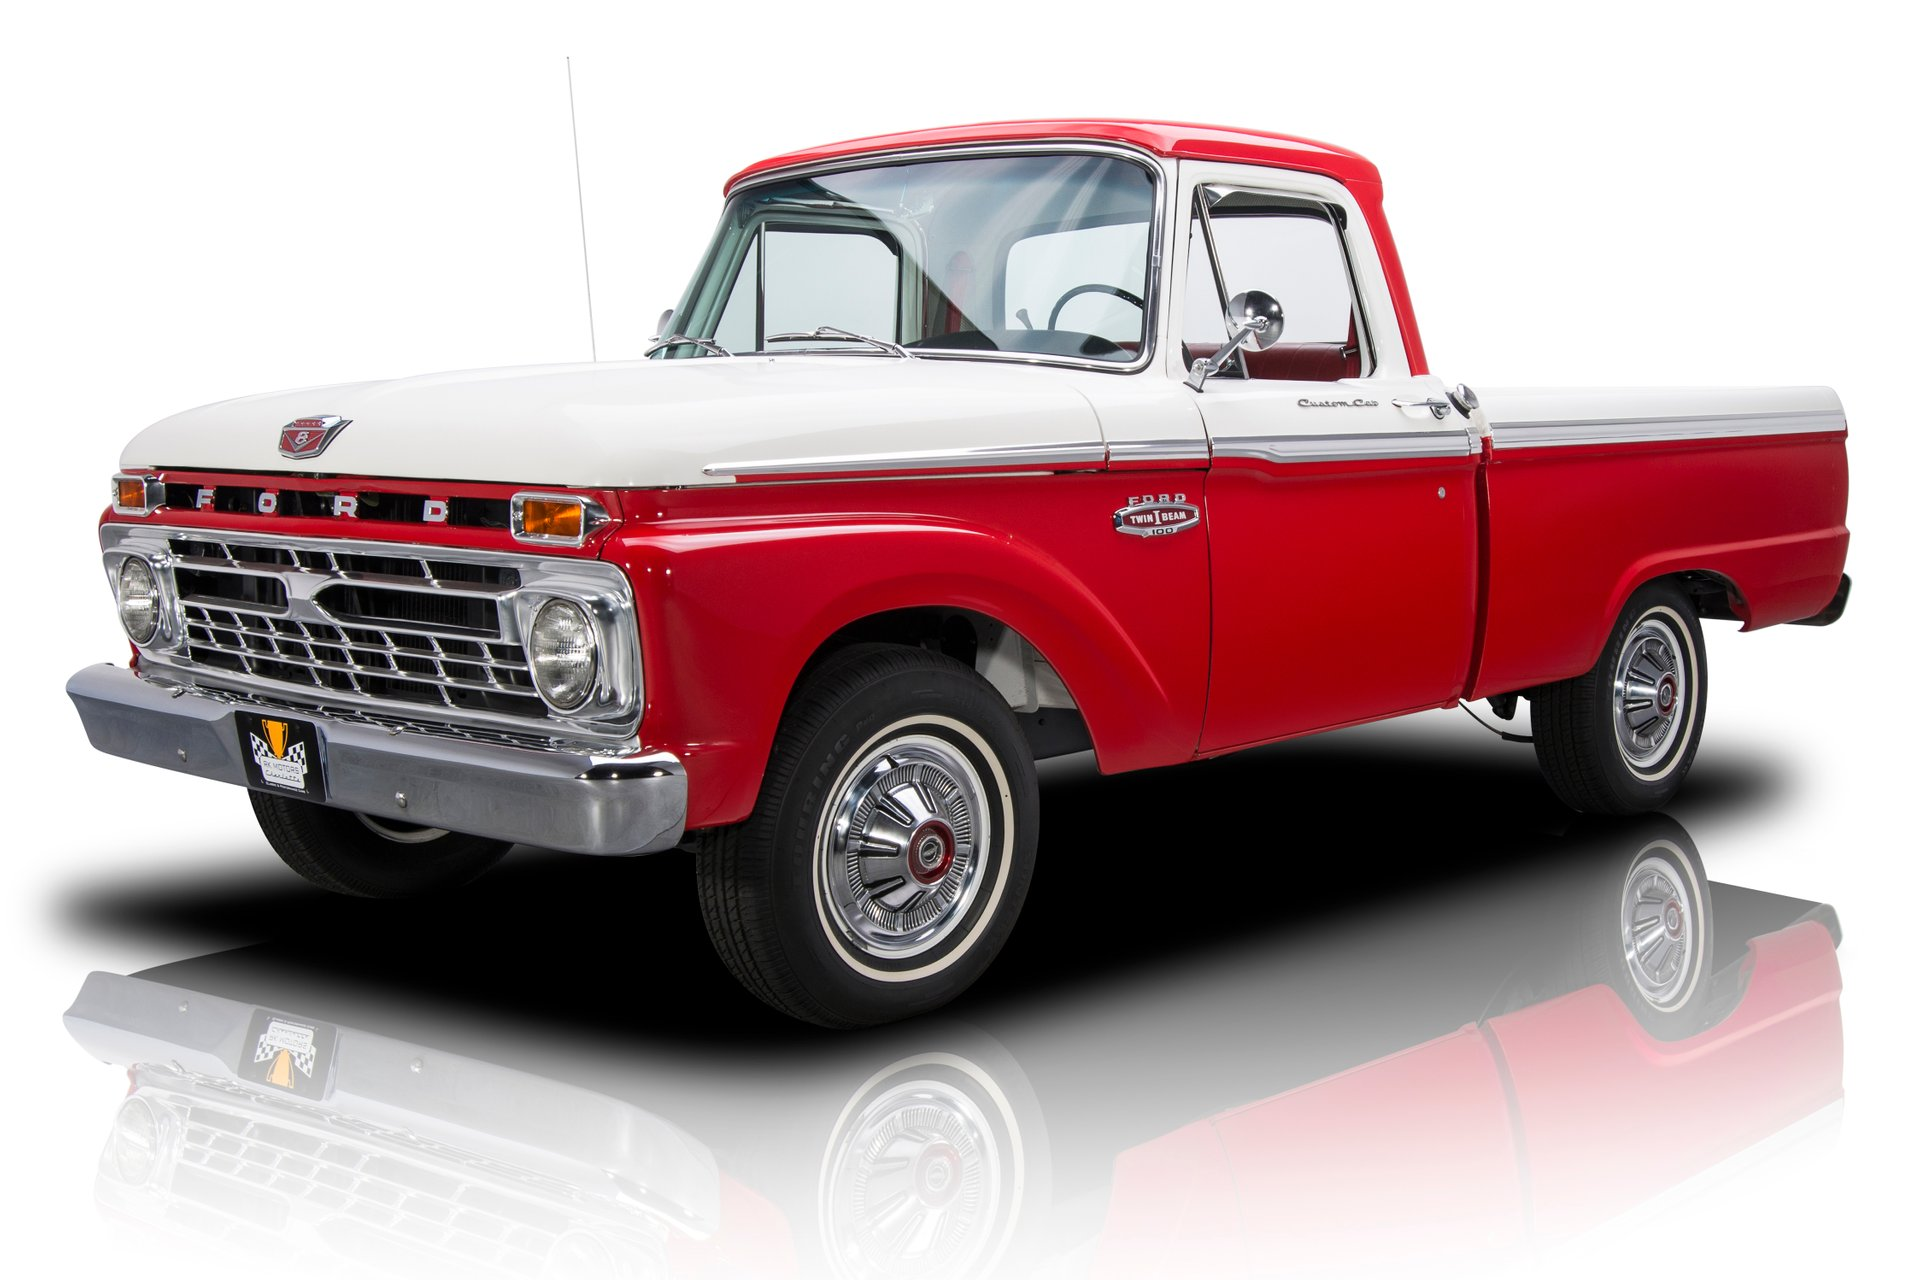 [FPWZ_2684]  135895 1966 Ford F100 RK Motors Classic Cars and Muscle Cars for Sale | 1966 Ford Pick Up Alternator Wiring Diagram |  | RK Motors